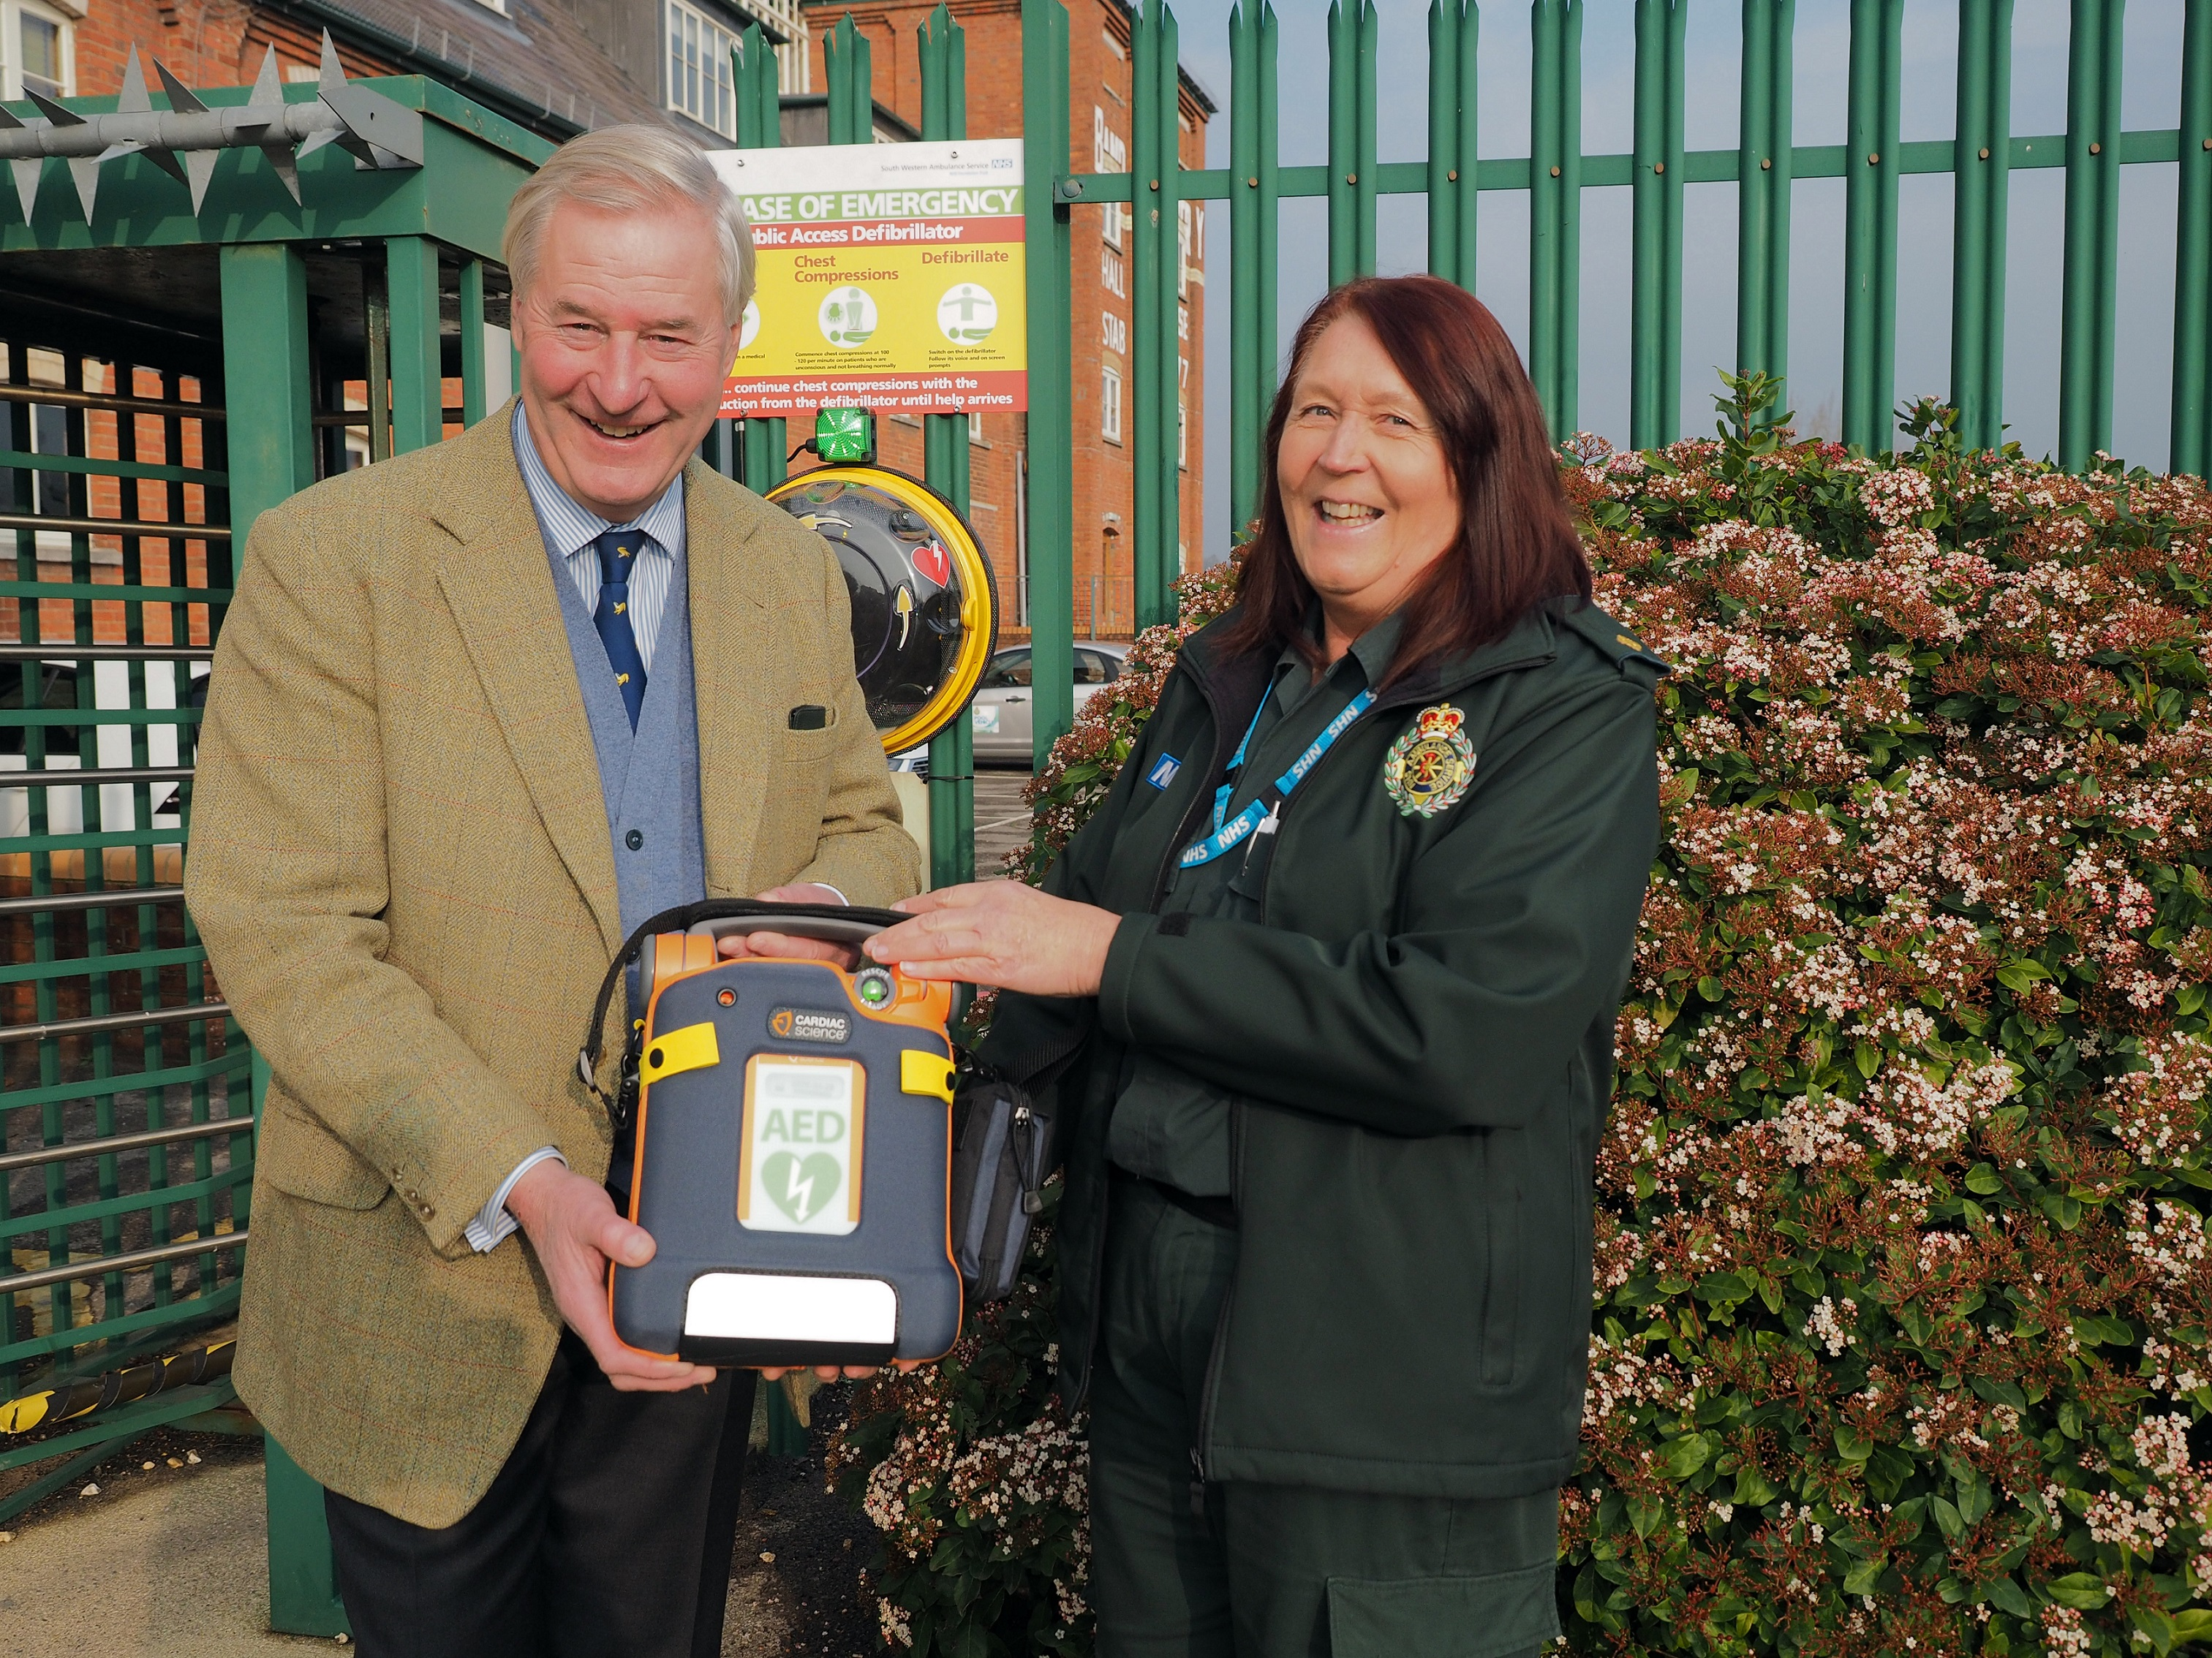 L-R Mark Woodhouse, Chairman of Hall & Woodhouse, and Kate Fisher, SWASFT Assistant Community Responder Officer for Dorset